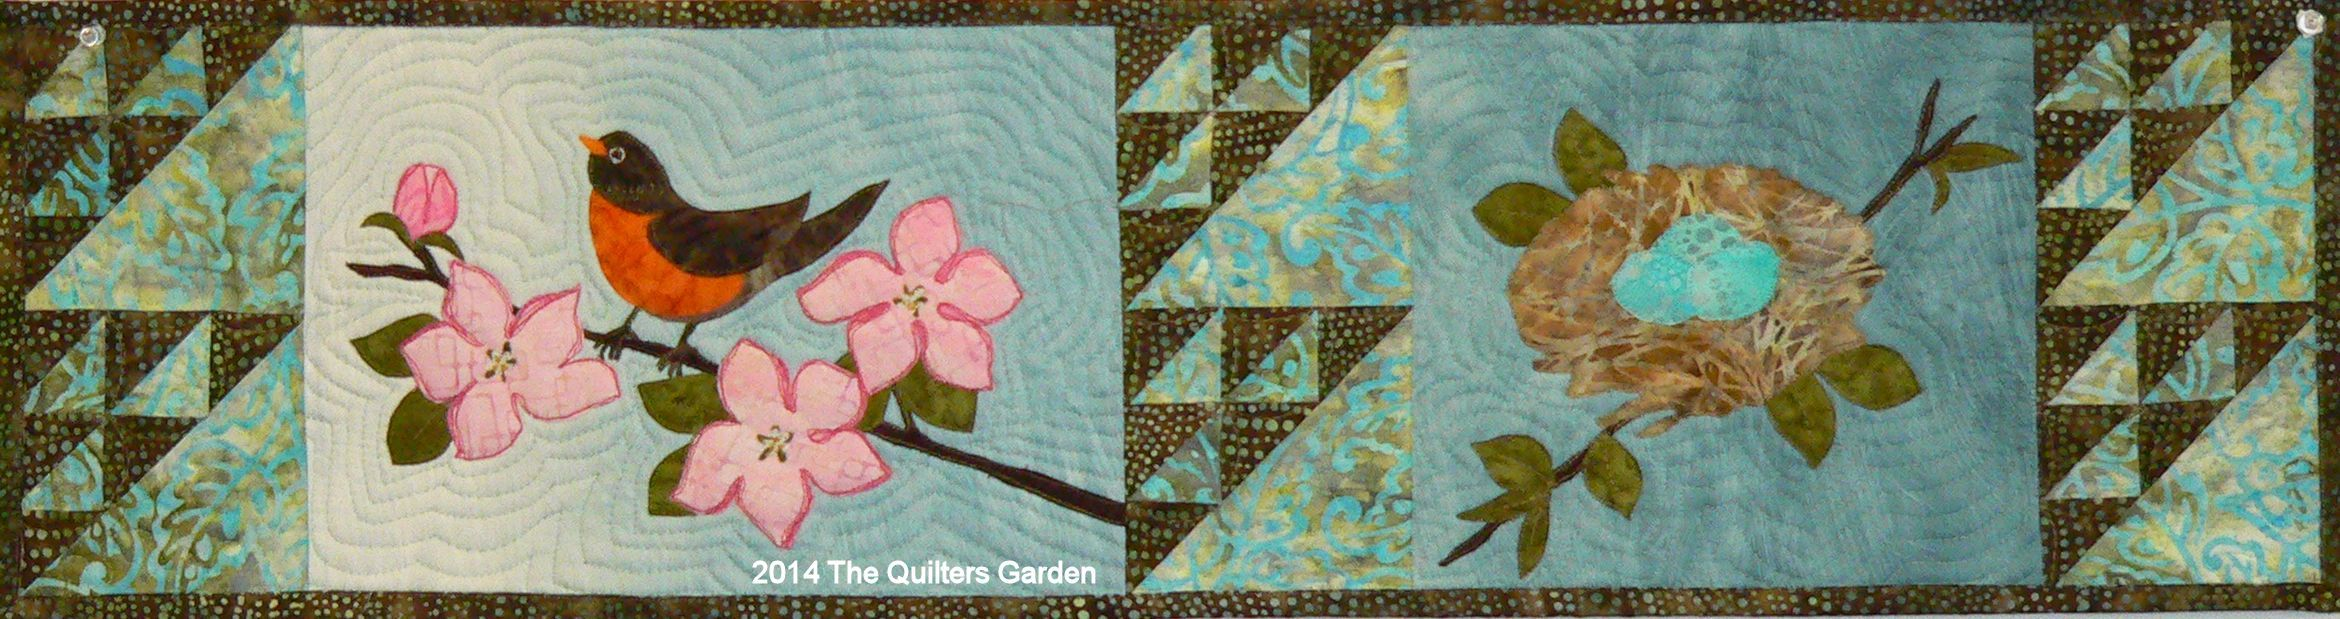 The Quilters Garden Beautiful Quilt Kits More Quilt Kits